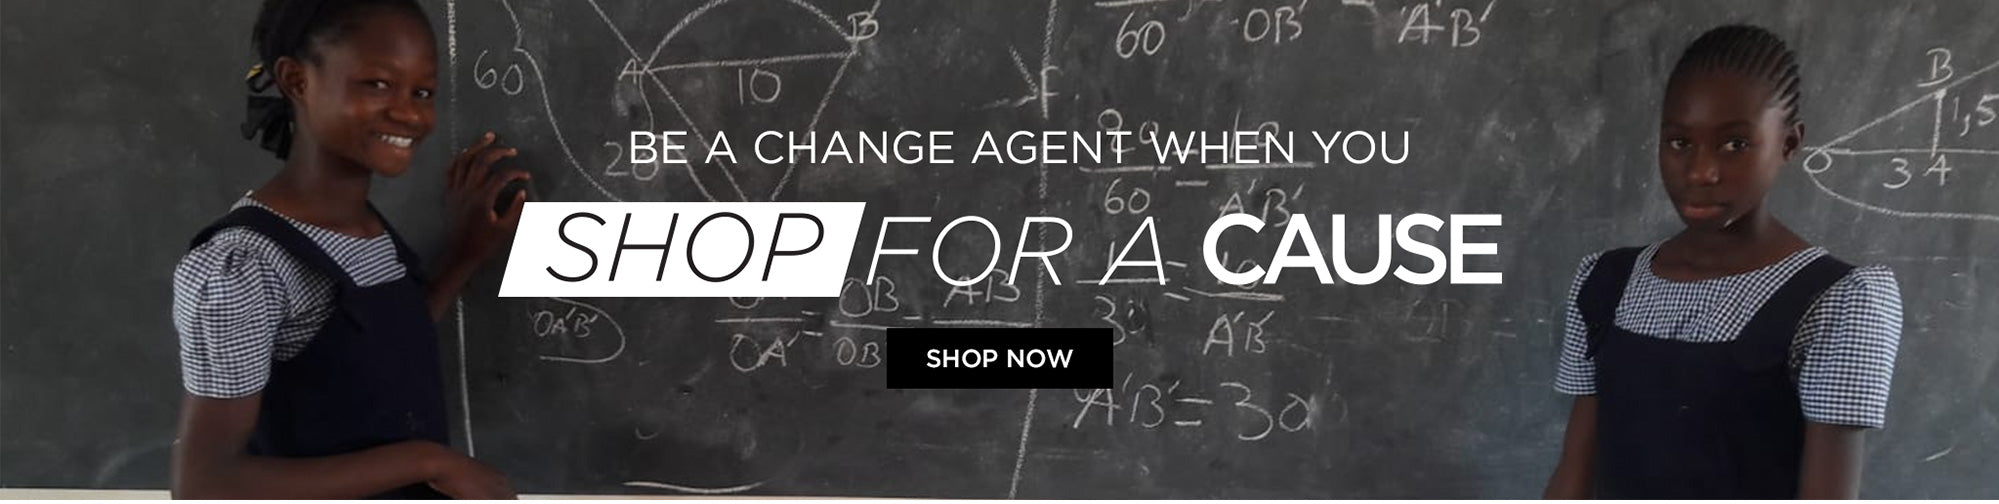 Be a change agent when you Shop For a Cause - Shop Now